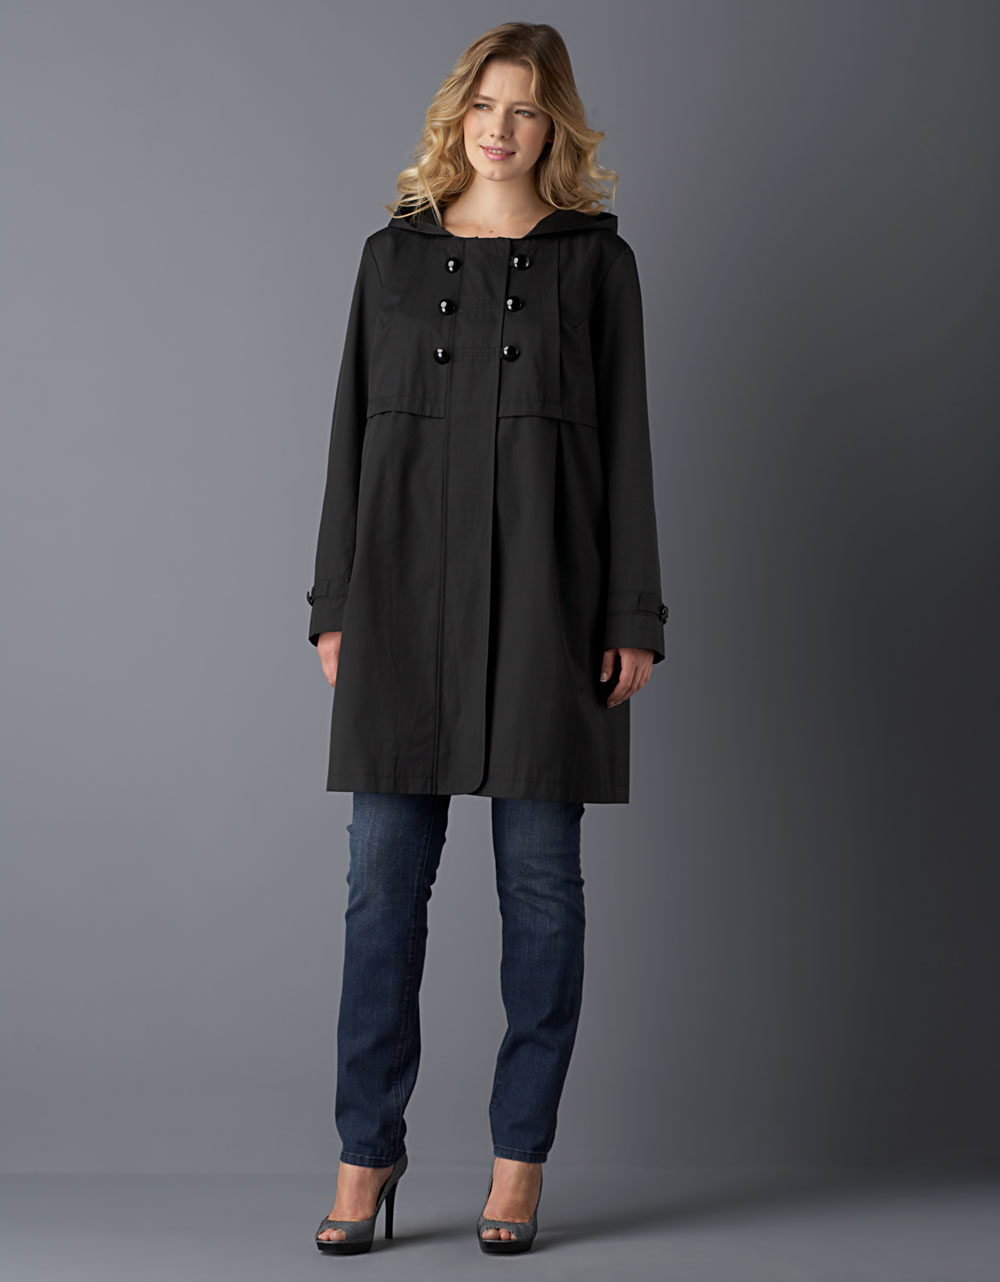 Dkny Plus-size Naomi Babydoll Coat in Black | Lyst